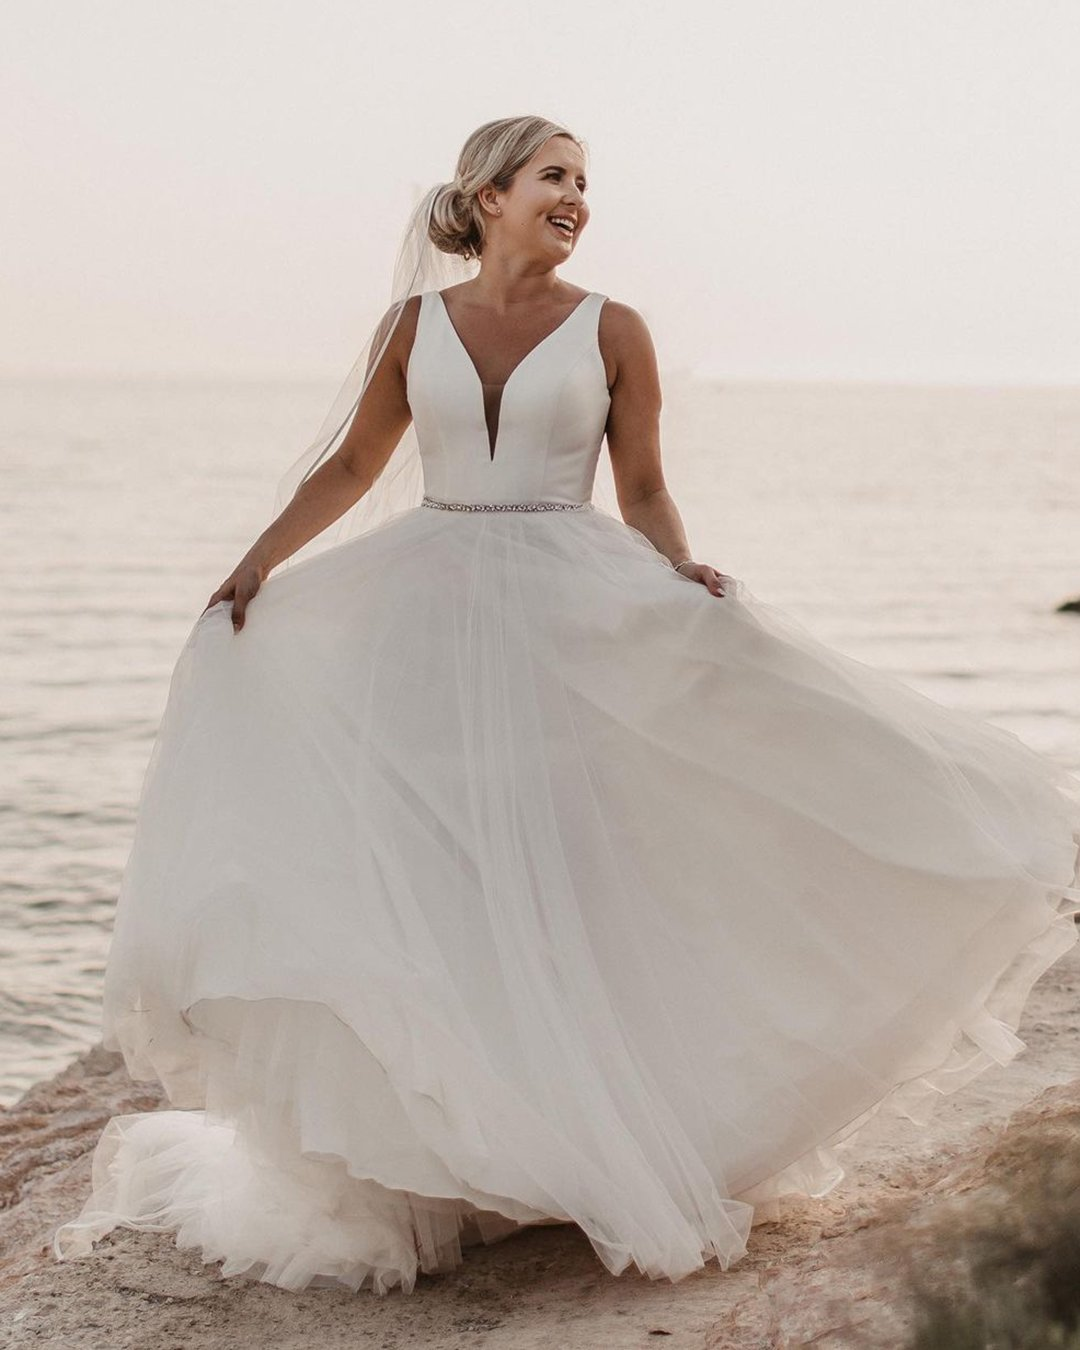 best wedding dresses a line simple country beach stella york